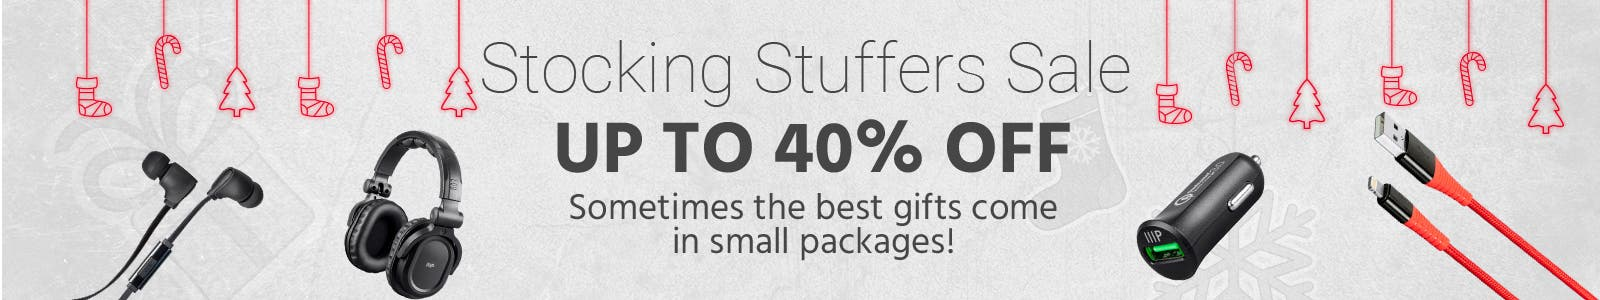 Stocking Stuffers Sale, up to 40% off, sometimes the best gifts come in small packages